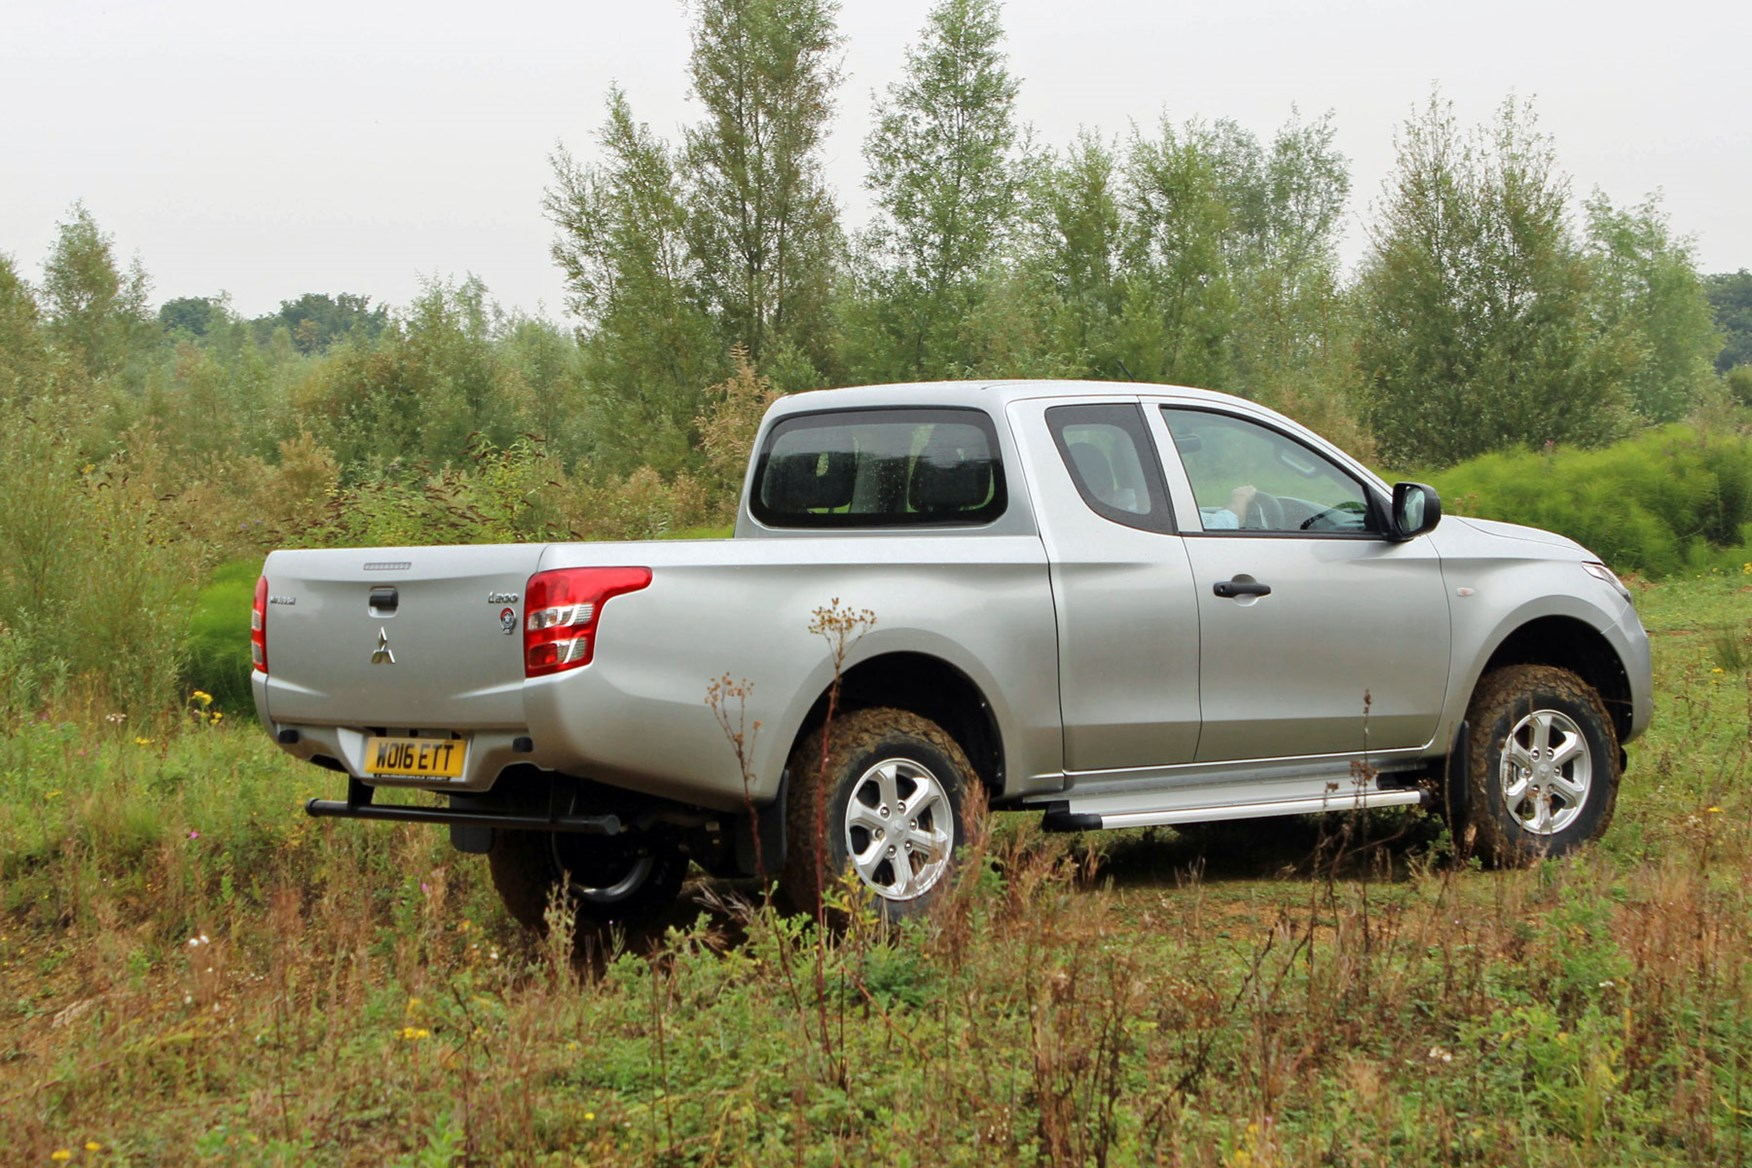 Mitsubishi L200 4Life Club Cab review - rear view, silver